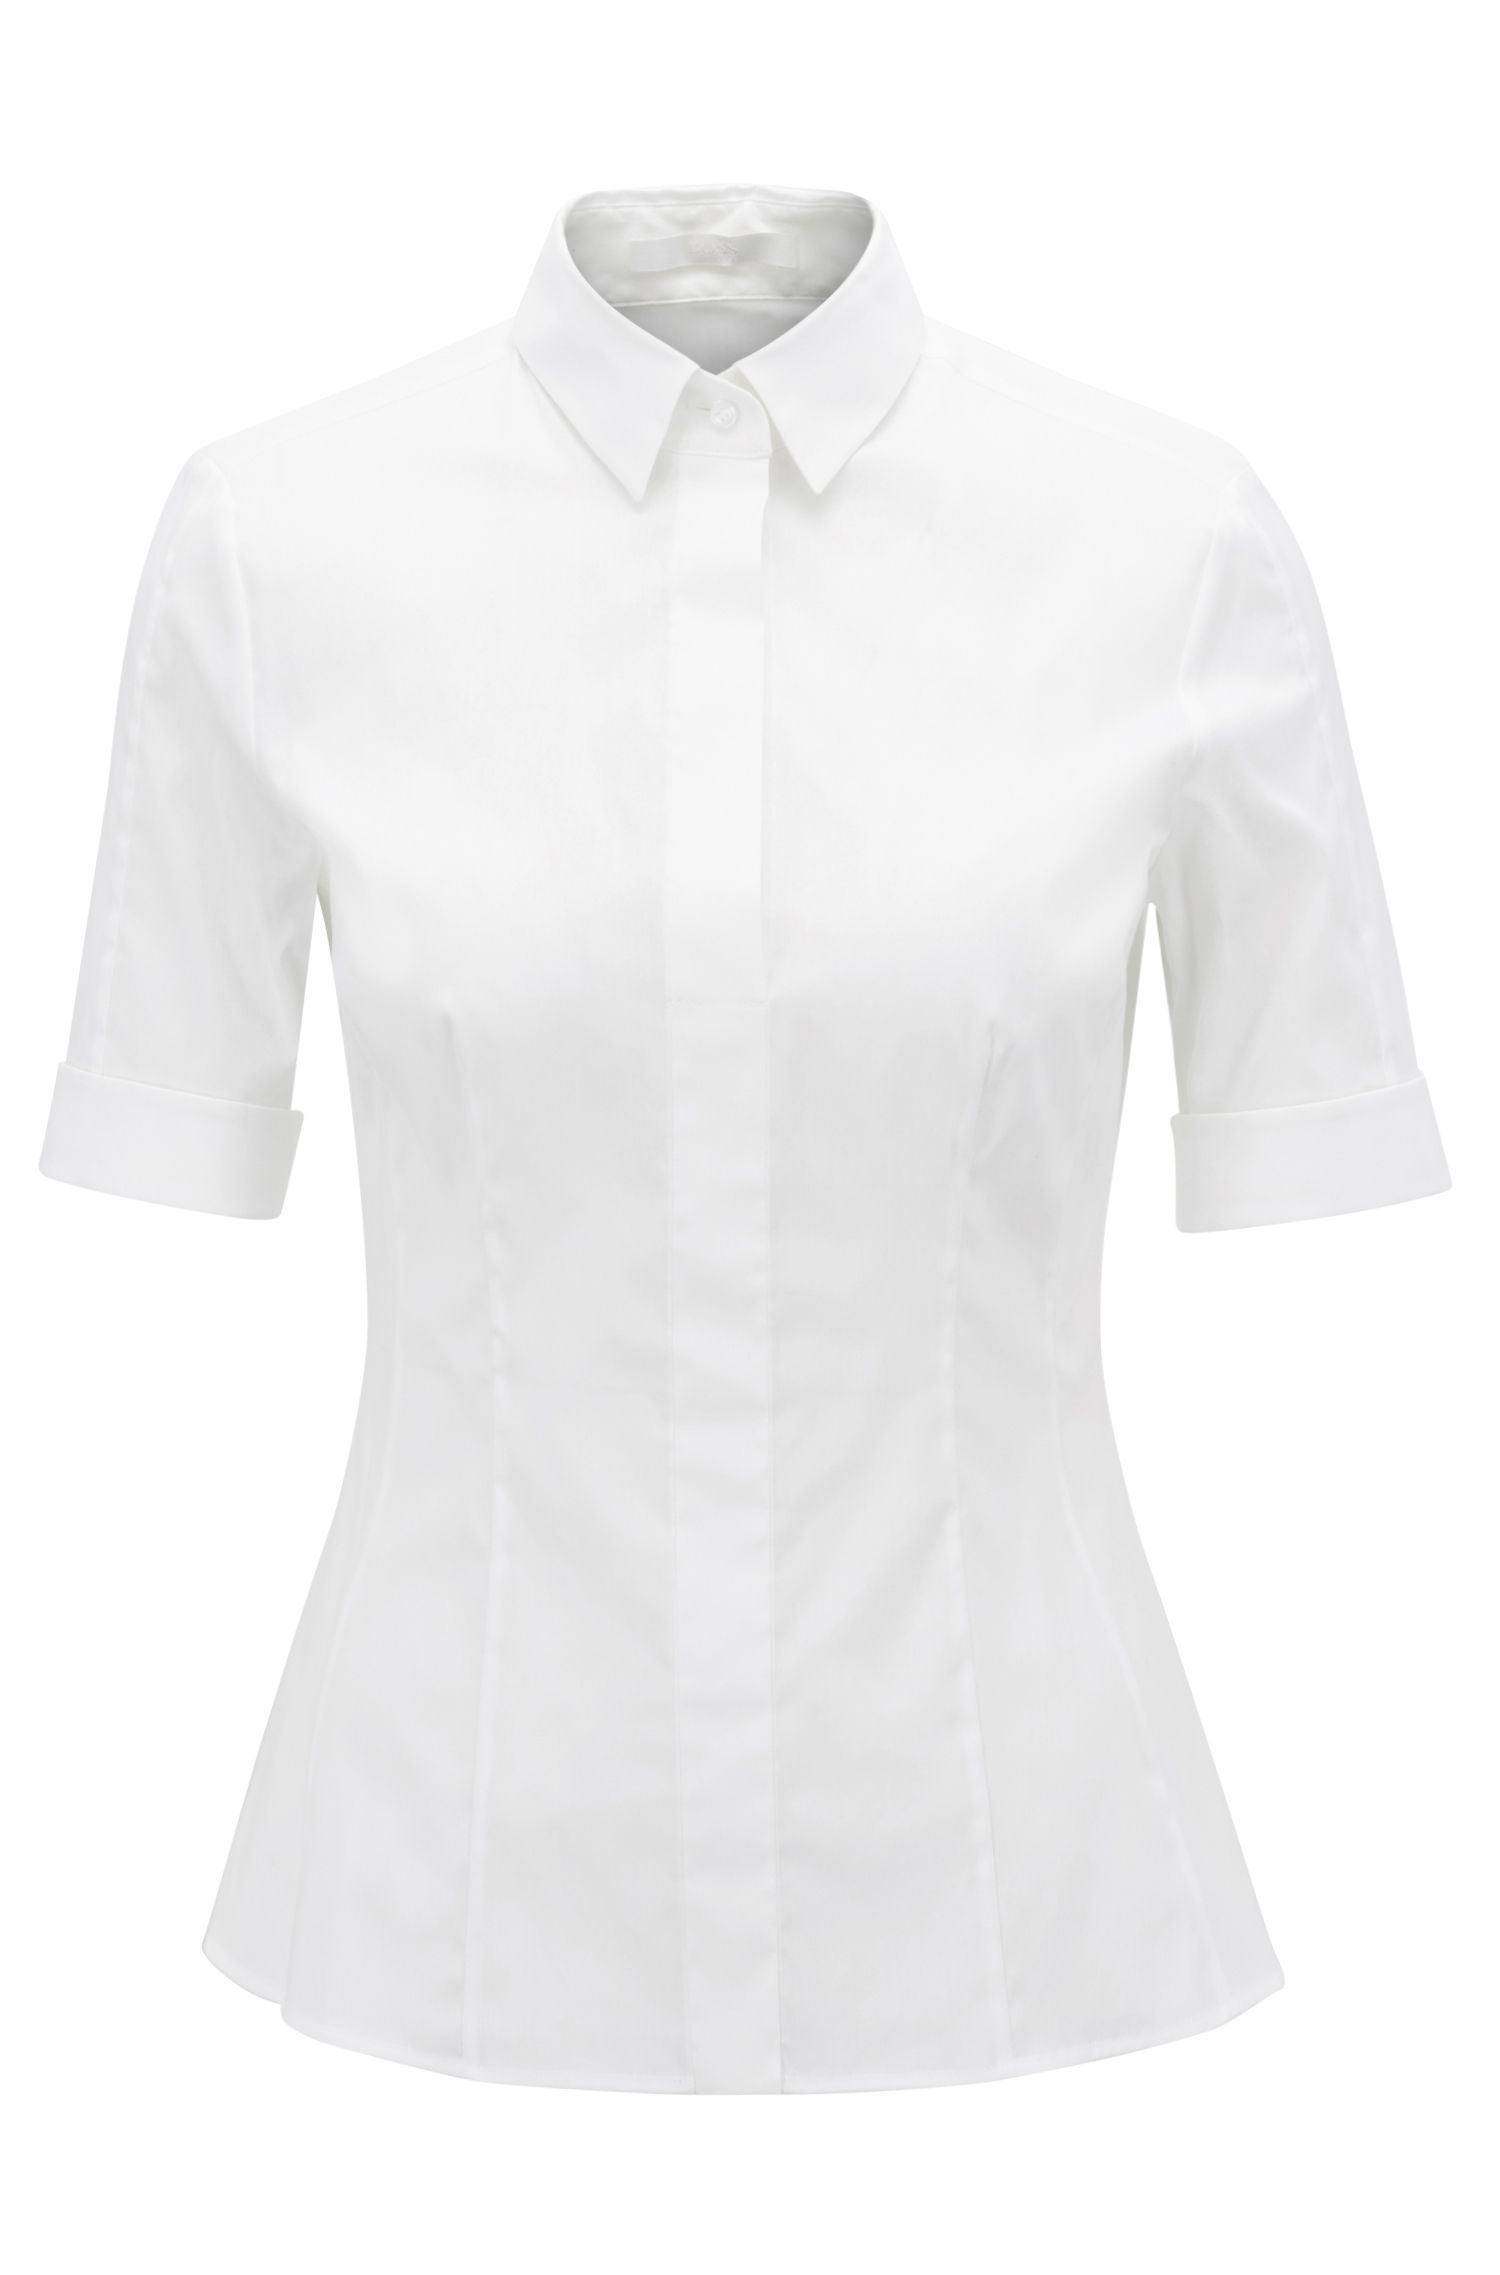 Slim-fit cotton-blend blouse with mock placket by BOSS Womenswear Fundamentals